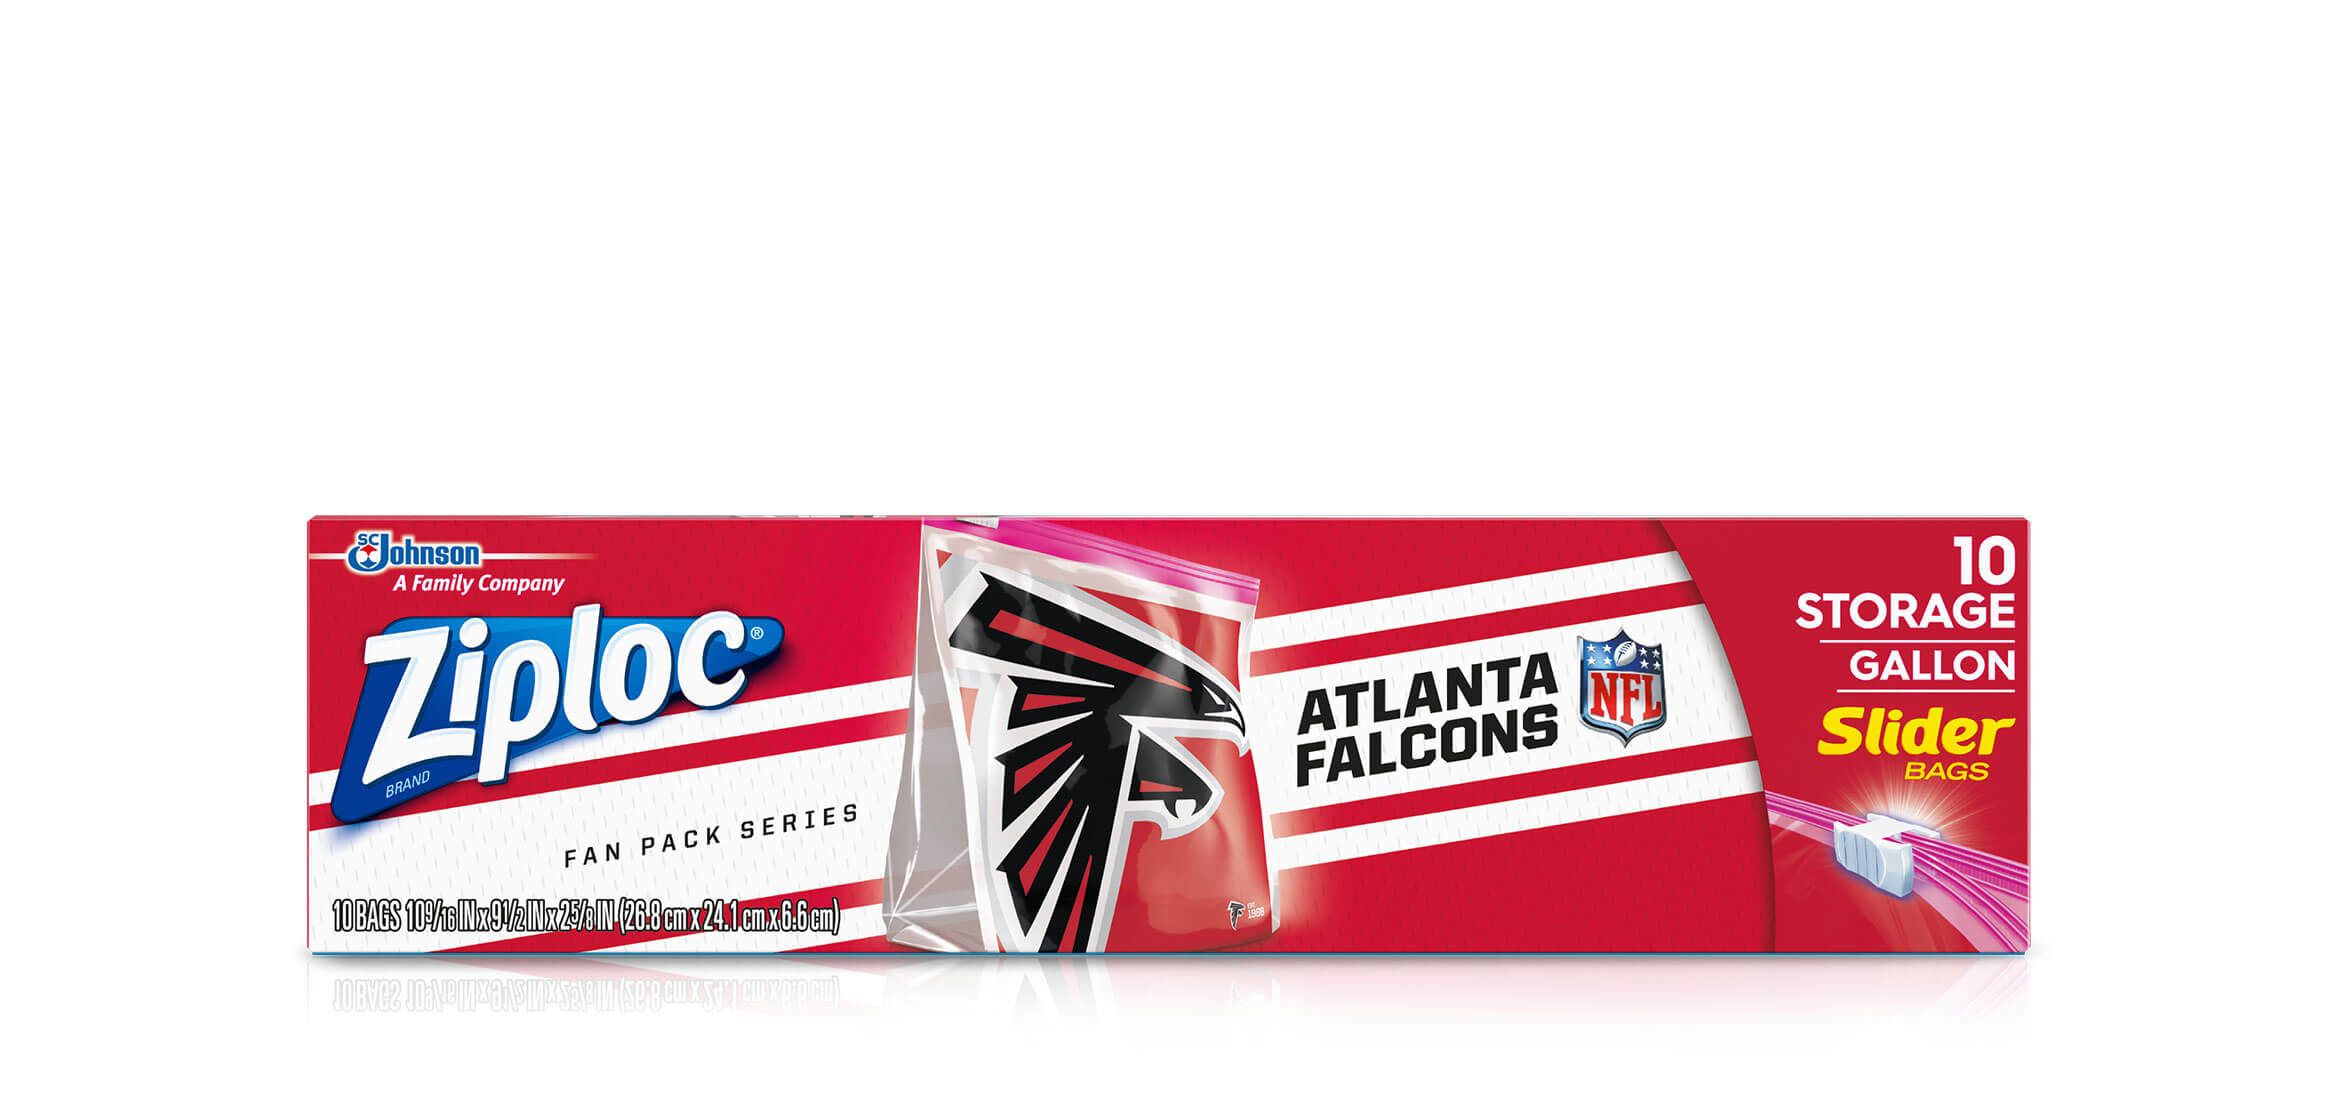 Atlanta-Falcons-Slider-Storage-Gallon-Hero-2X